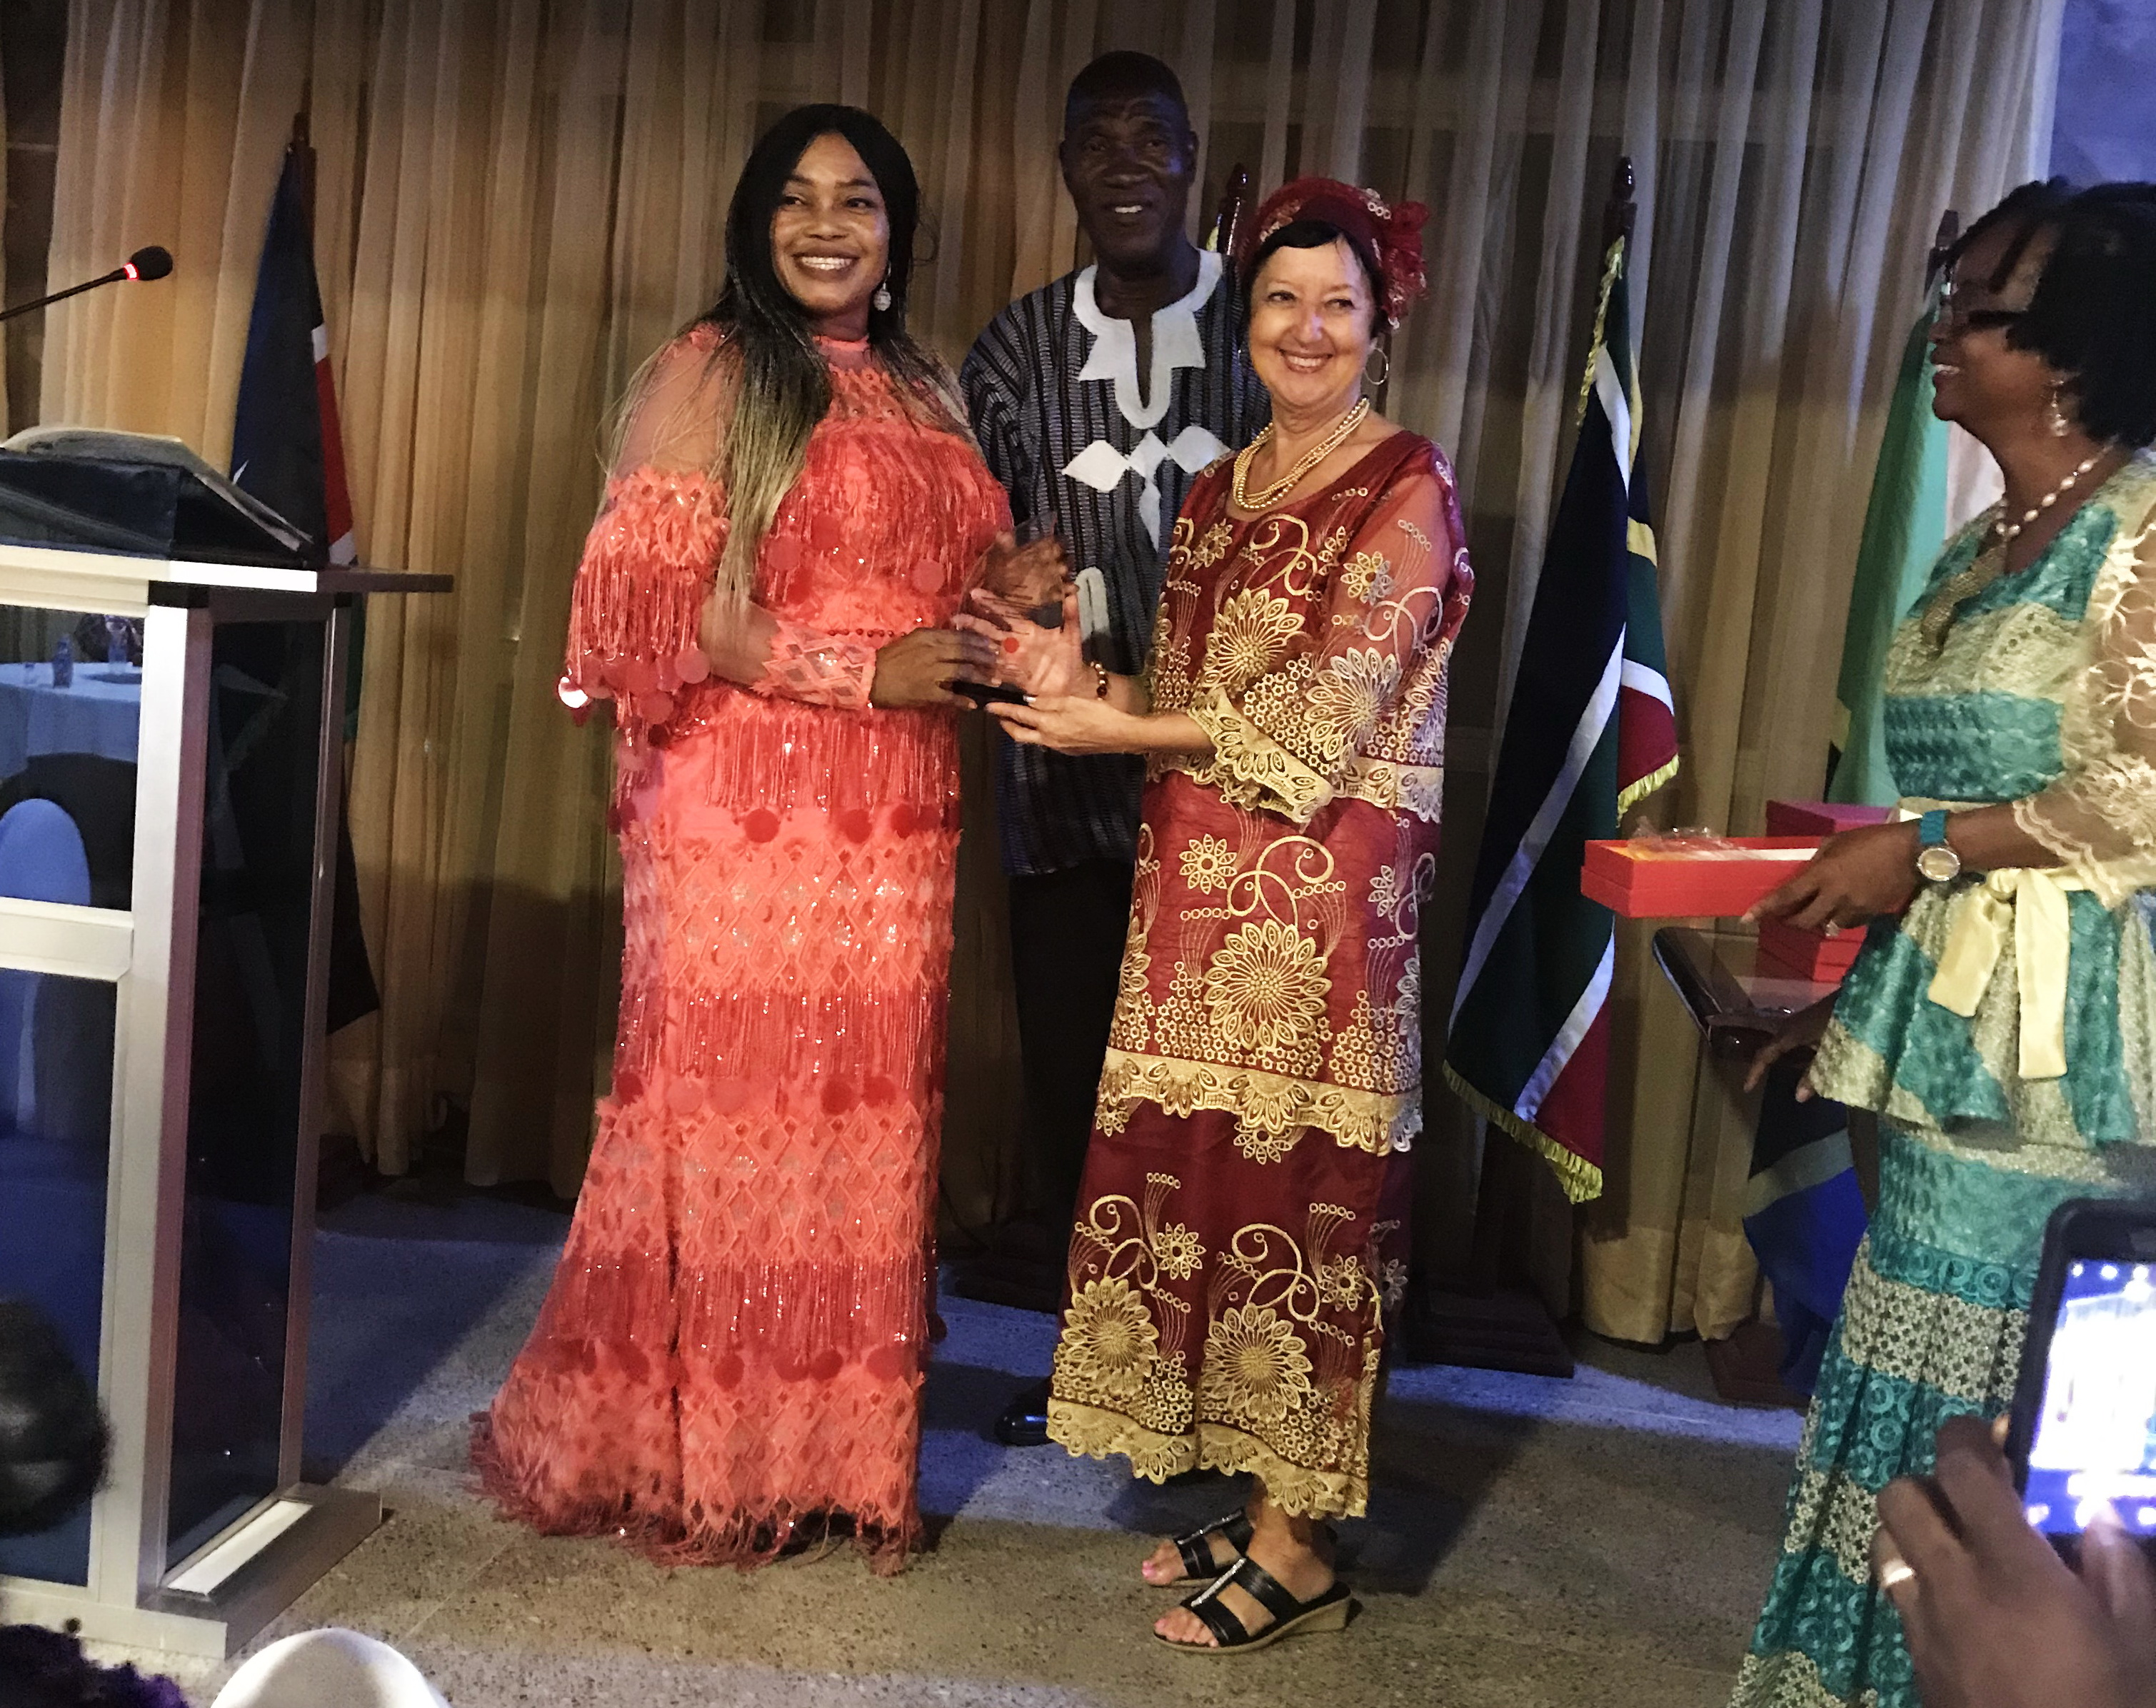 Impact Award for Service to Humanity marking 16 plus years.